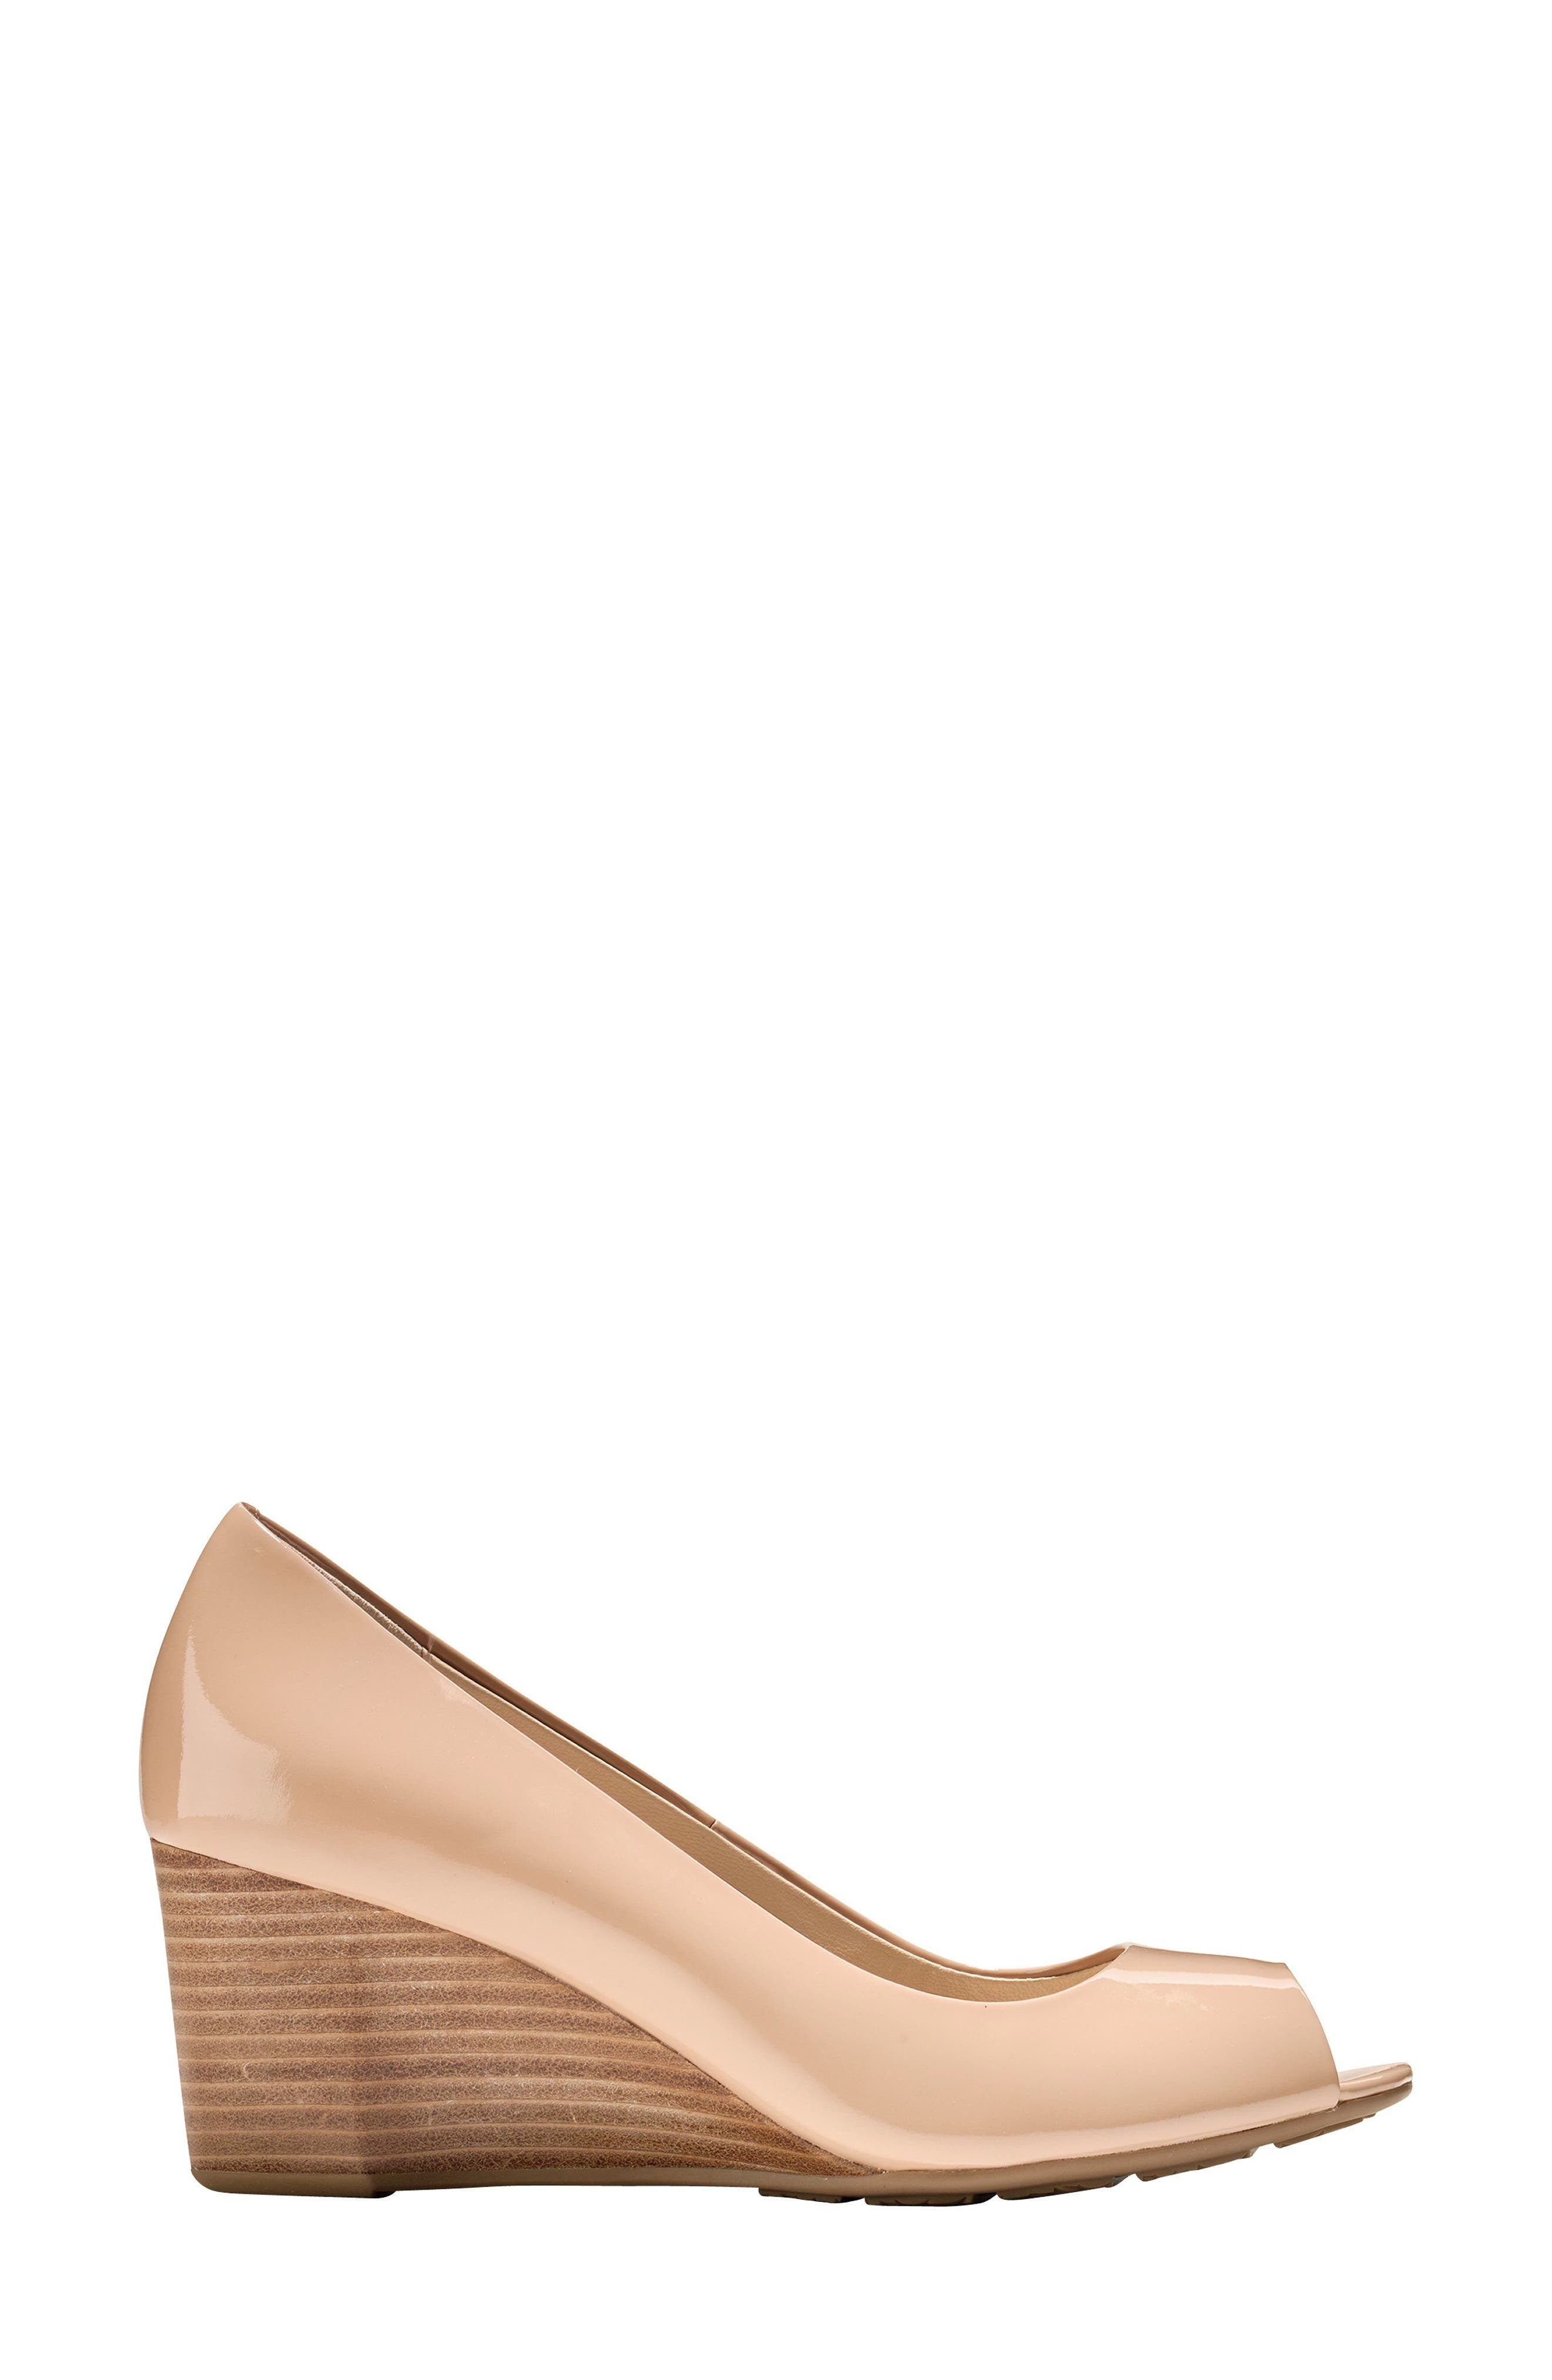 Sadie Open Toe Wedge Pump,                             Alternate thumbnail 2, color,                             NUDE PATENT LEATHER